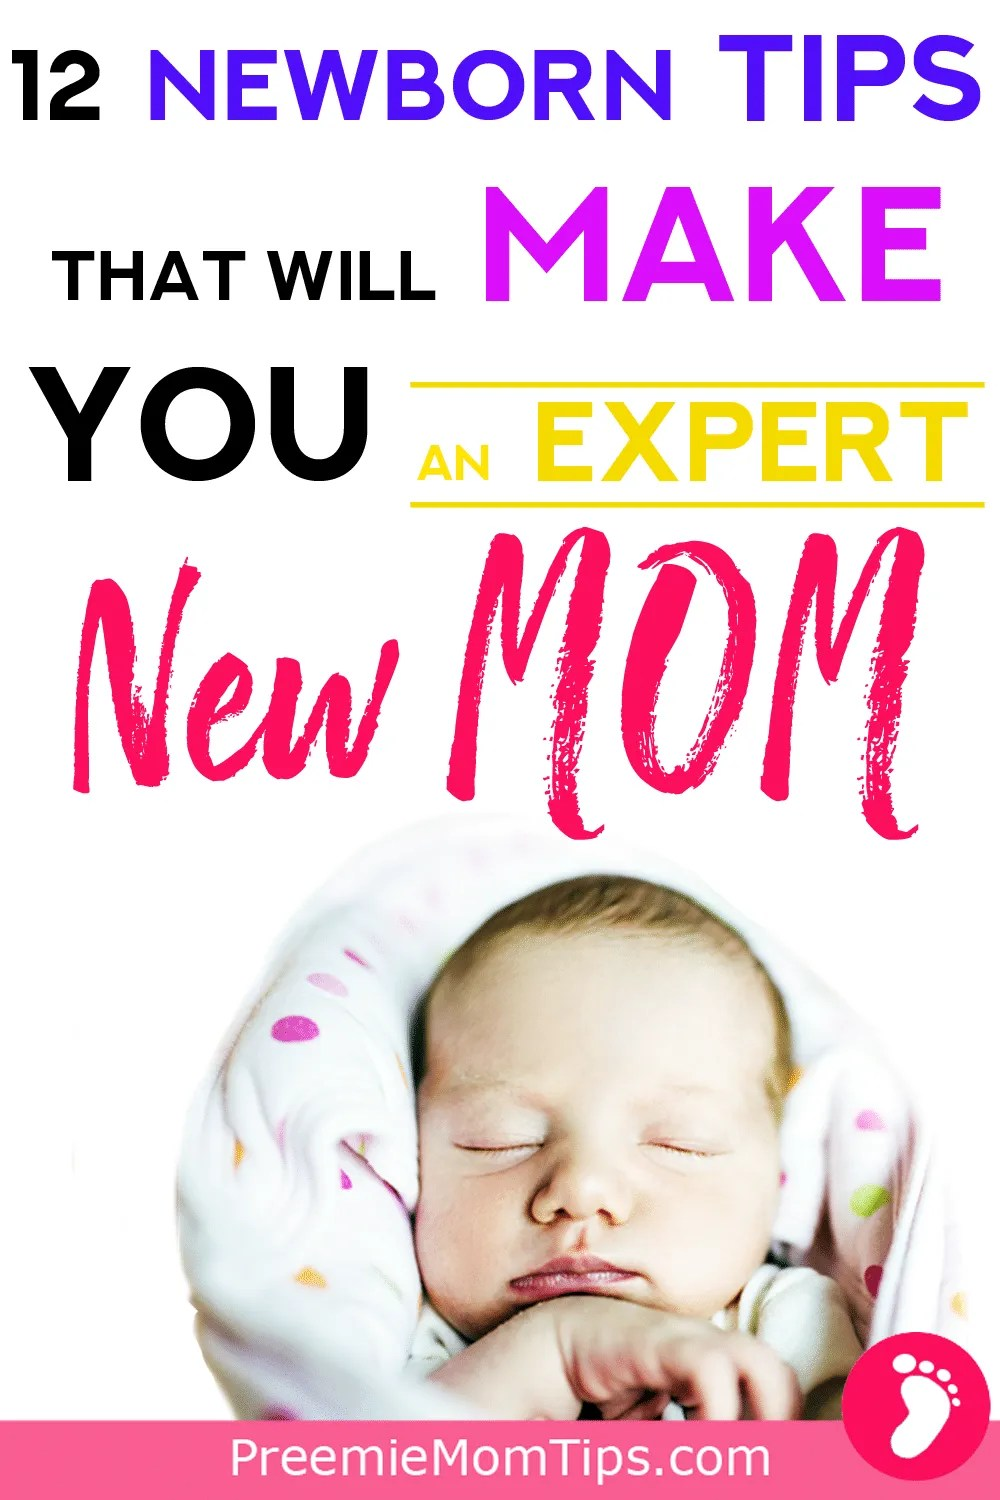 Newborn care tips you definetly need to know to becoming a parenting expert from day 1!